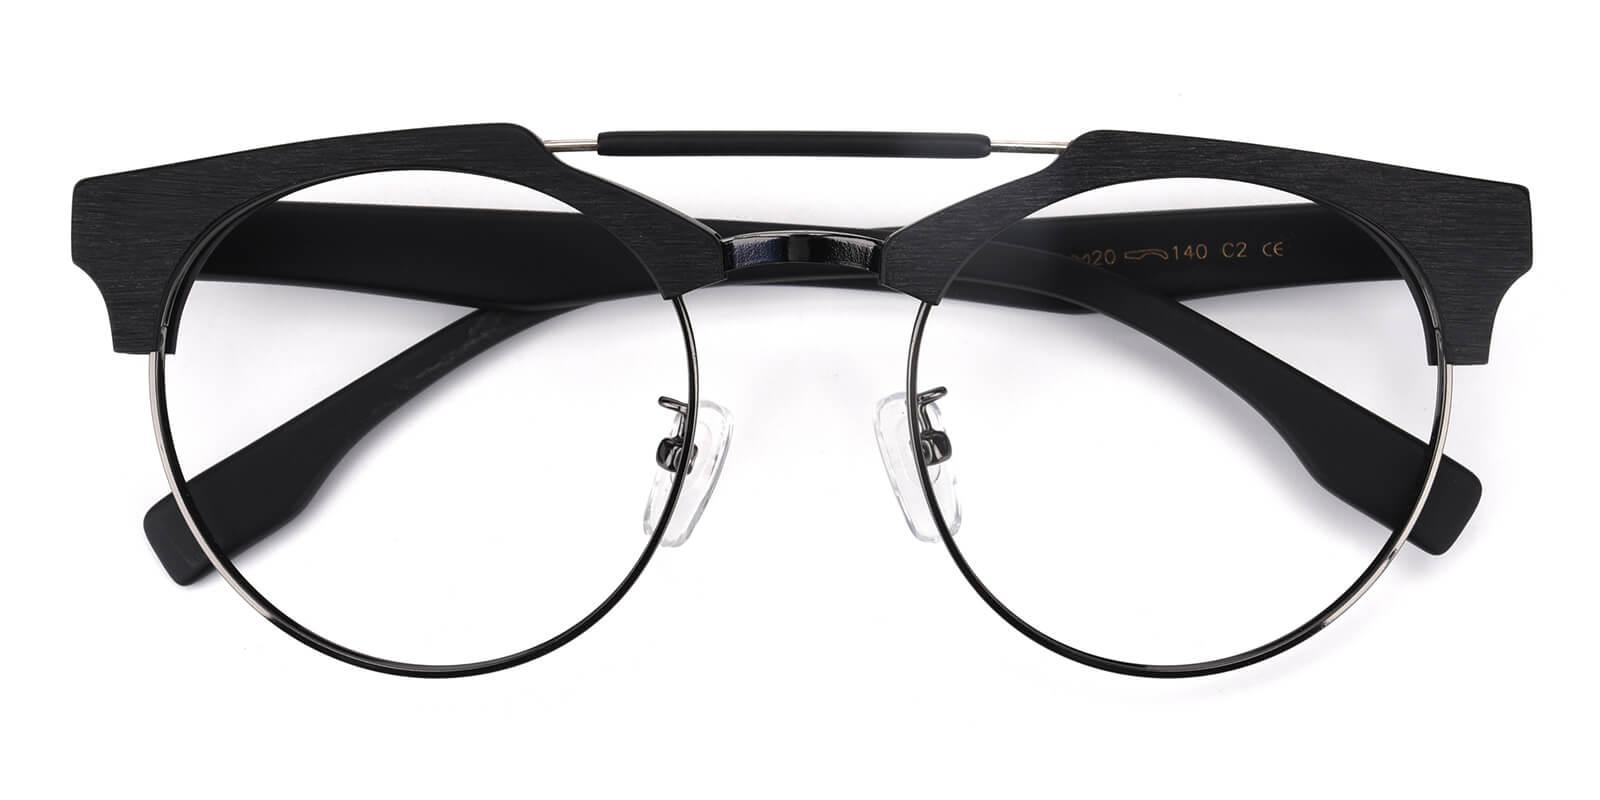 Ombama-Black-Browline-Combination-Eyeglasses-detail